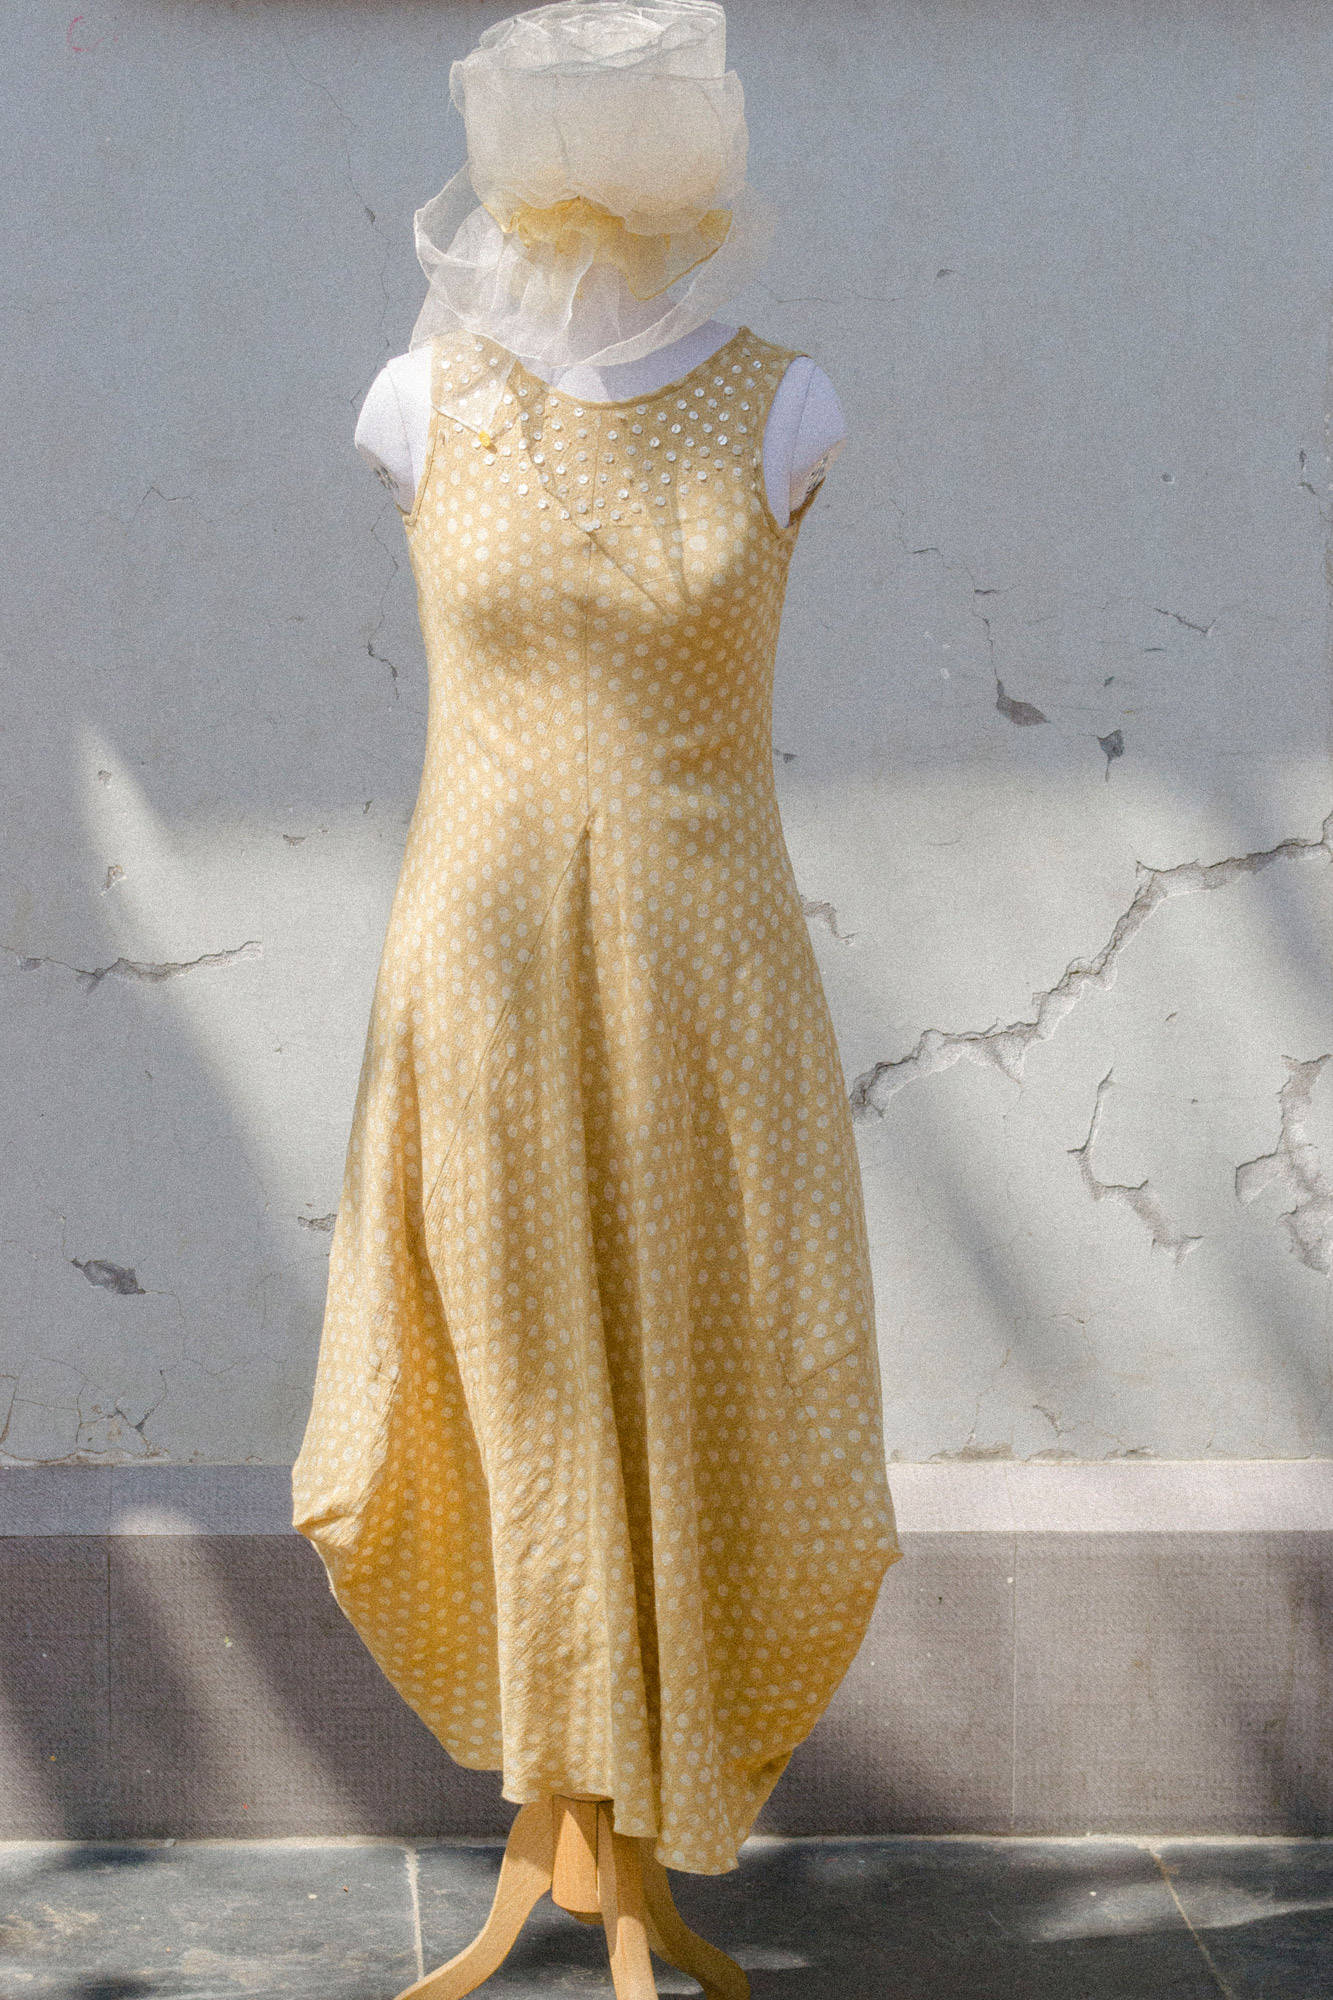 SLEEVELESS COWL DRESS